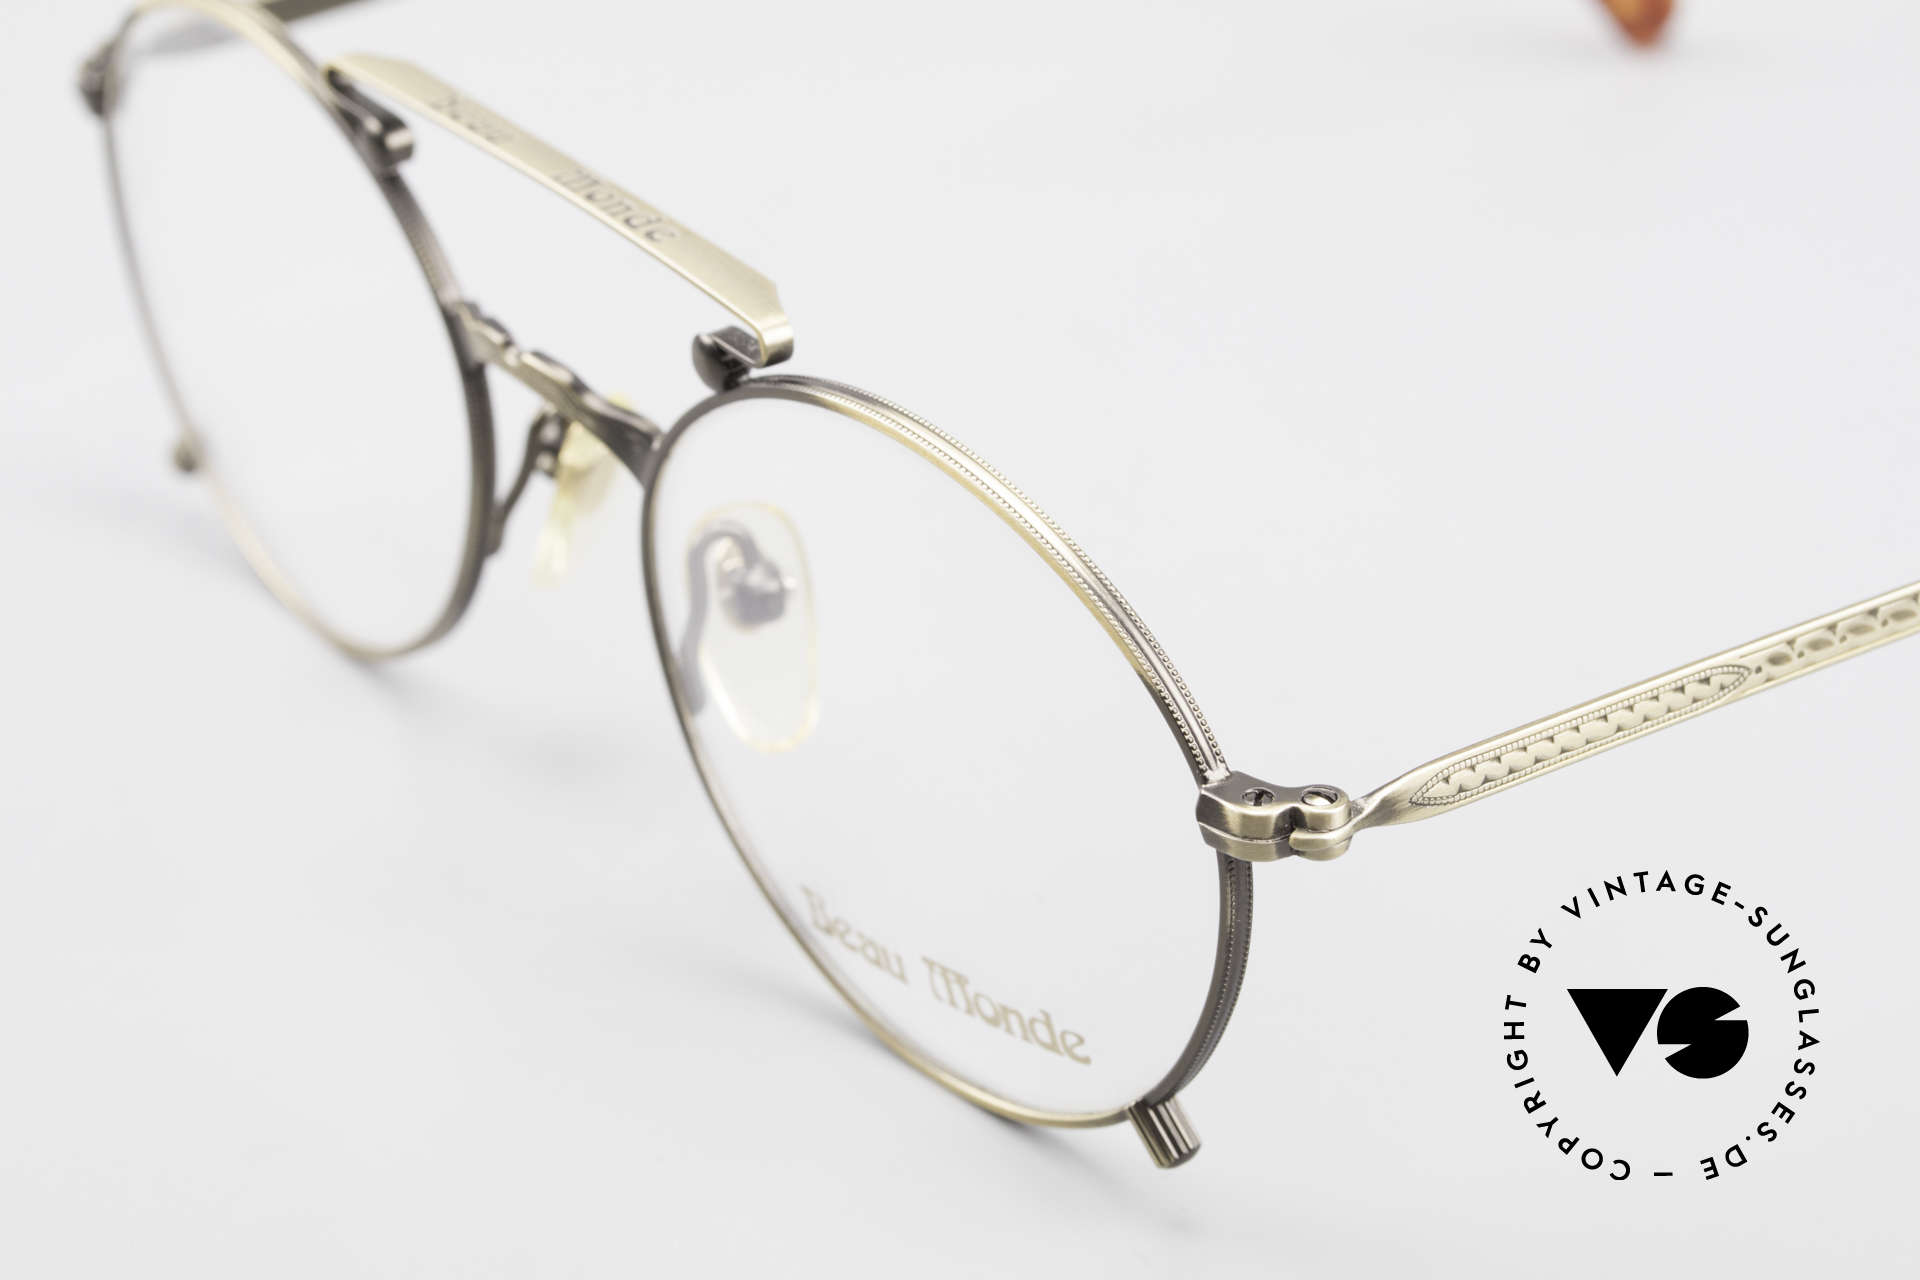 Beau Monde Knightsbridge Old Vintage Frame 90's Insider, made with attention to details (check all the engravings), Made for Men and Women